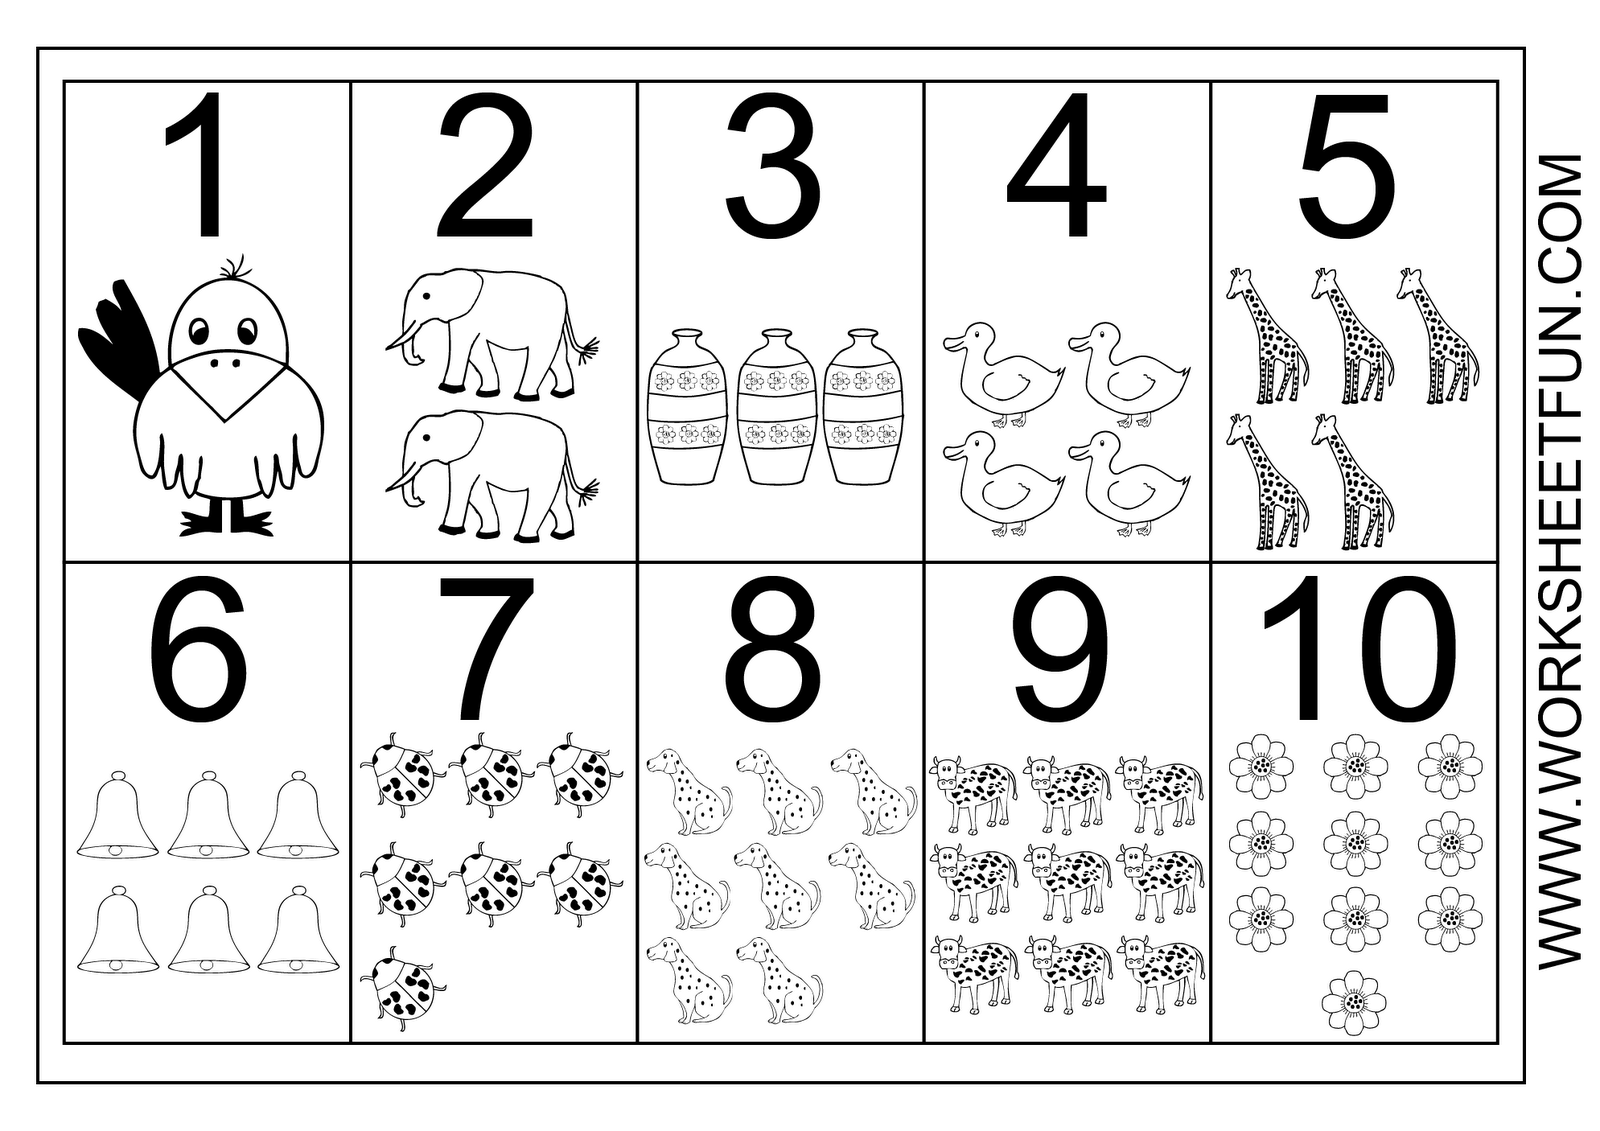 picture relating to Free Printable Numbers 1 10 identify 1-10 Worksheets Figures 1 10 Printable Worksheet trainer